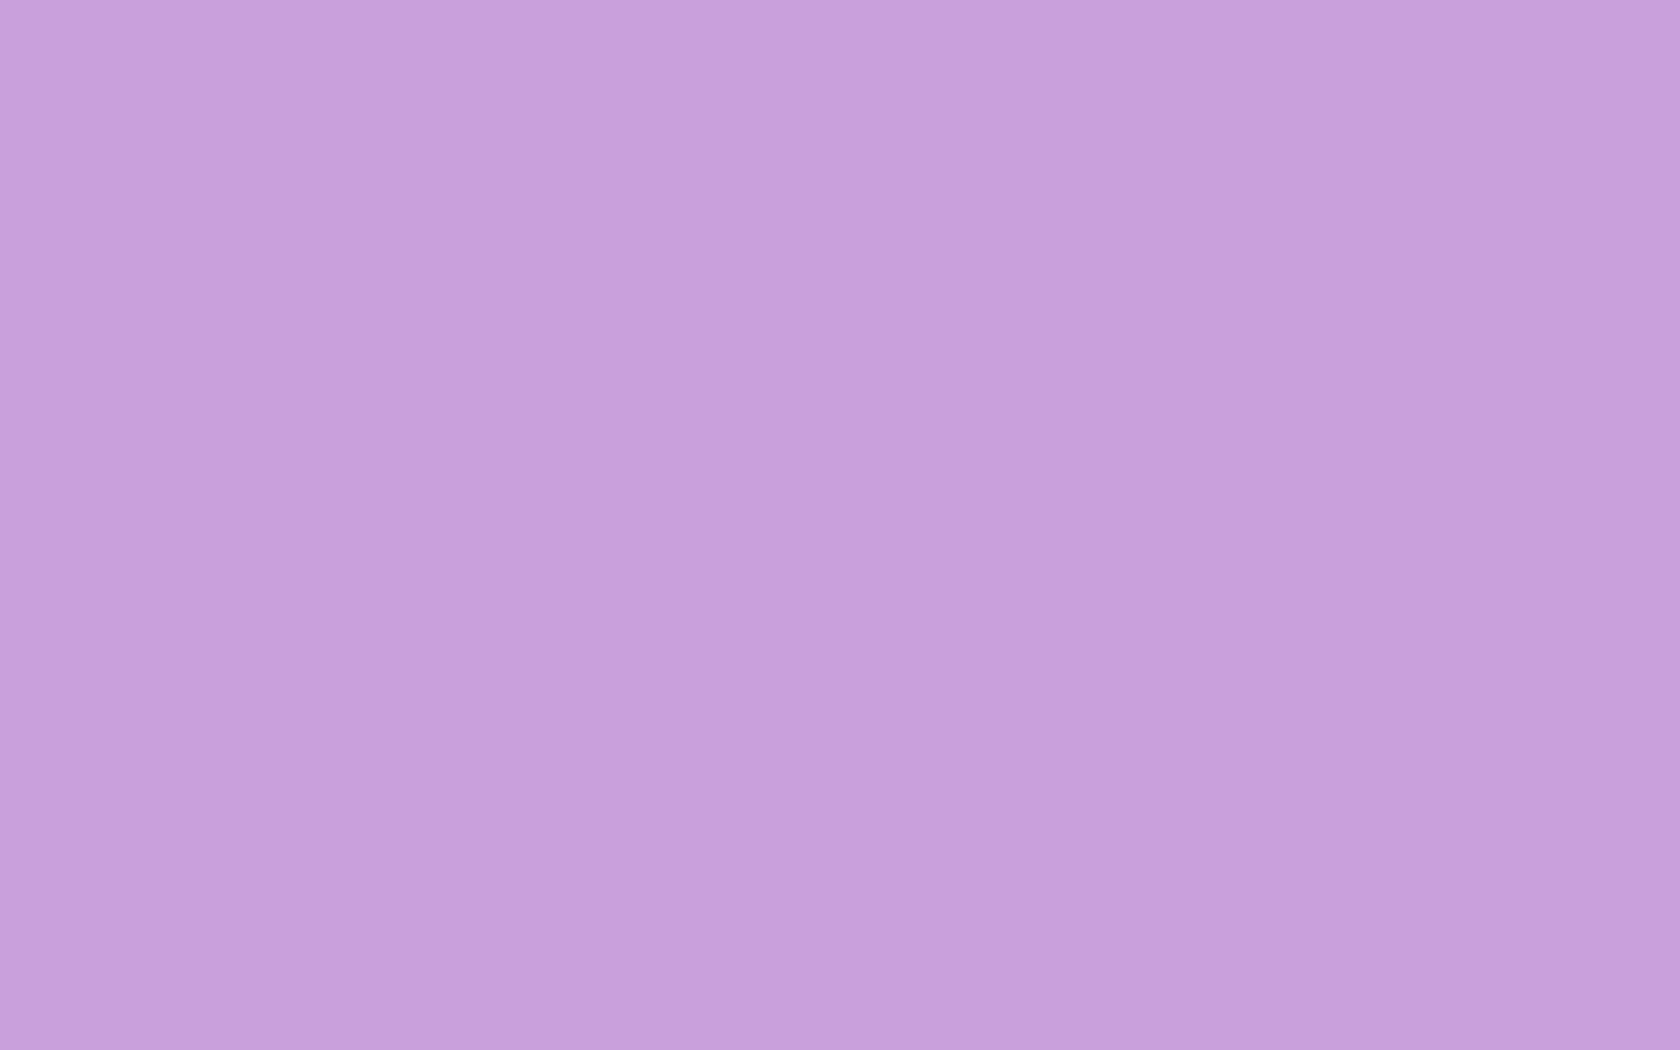 1680x1050 Wisteria Solid Color Background